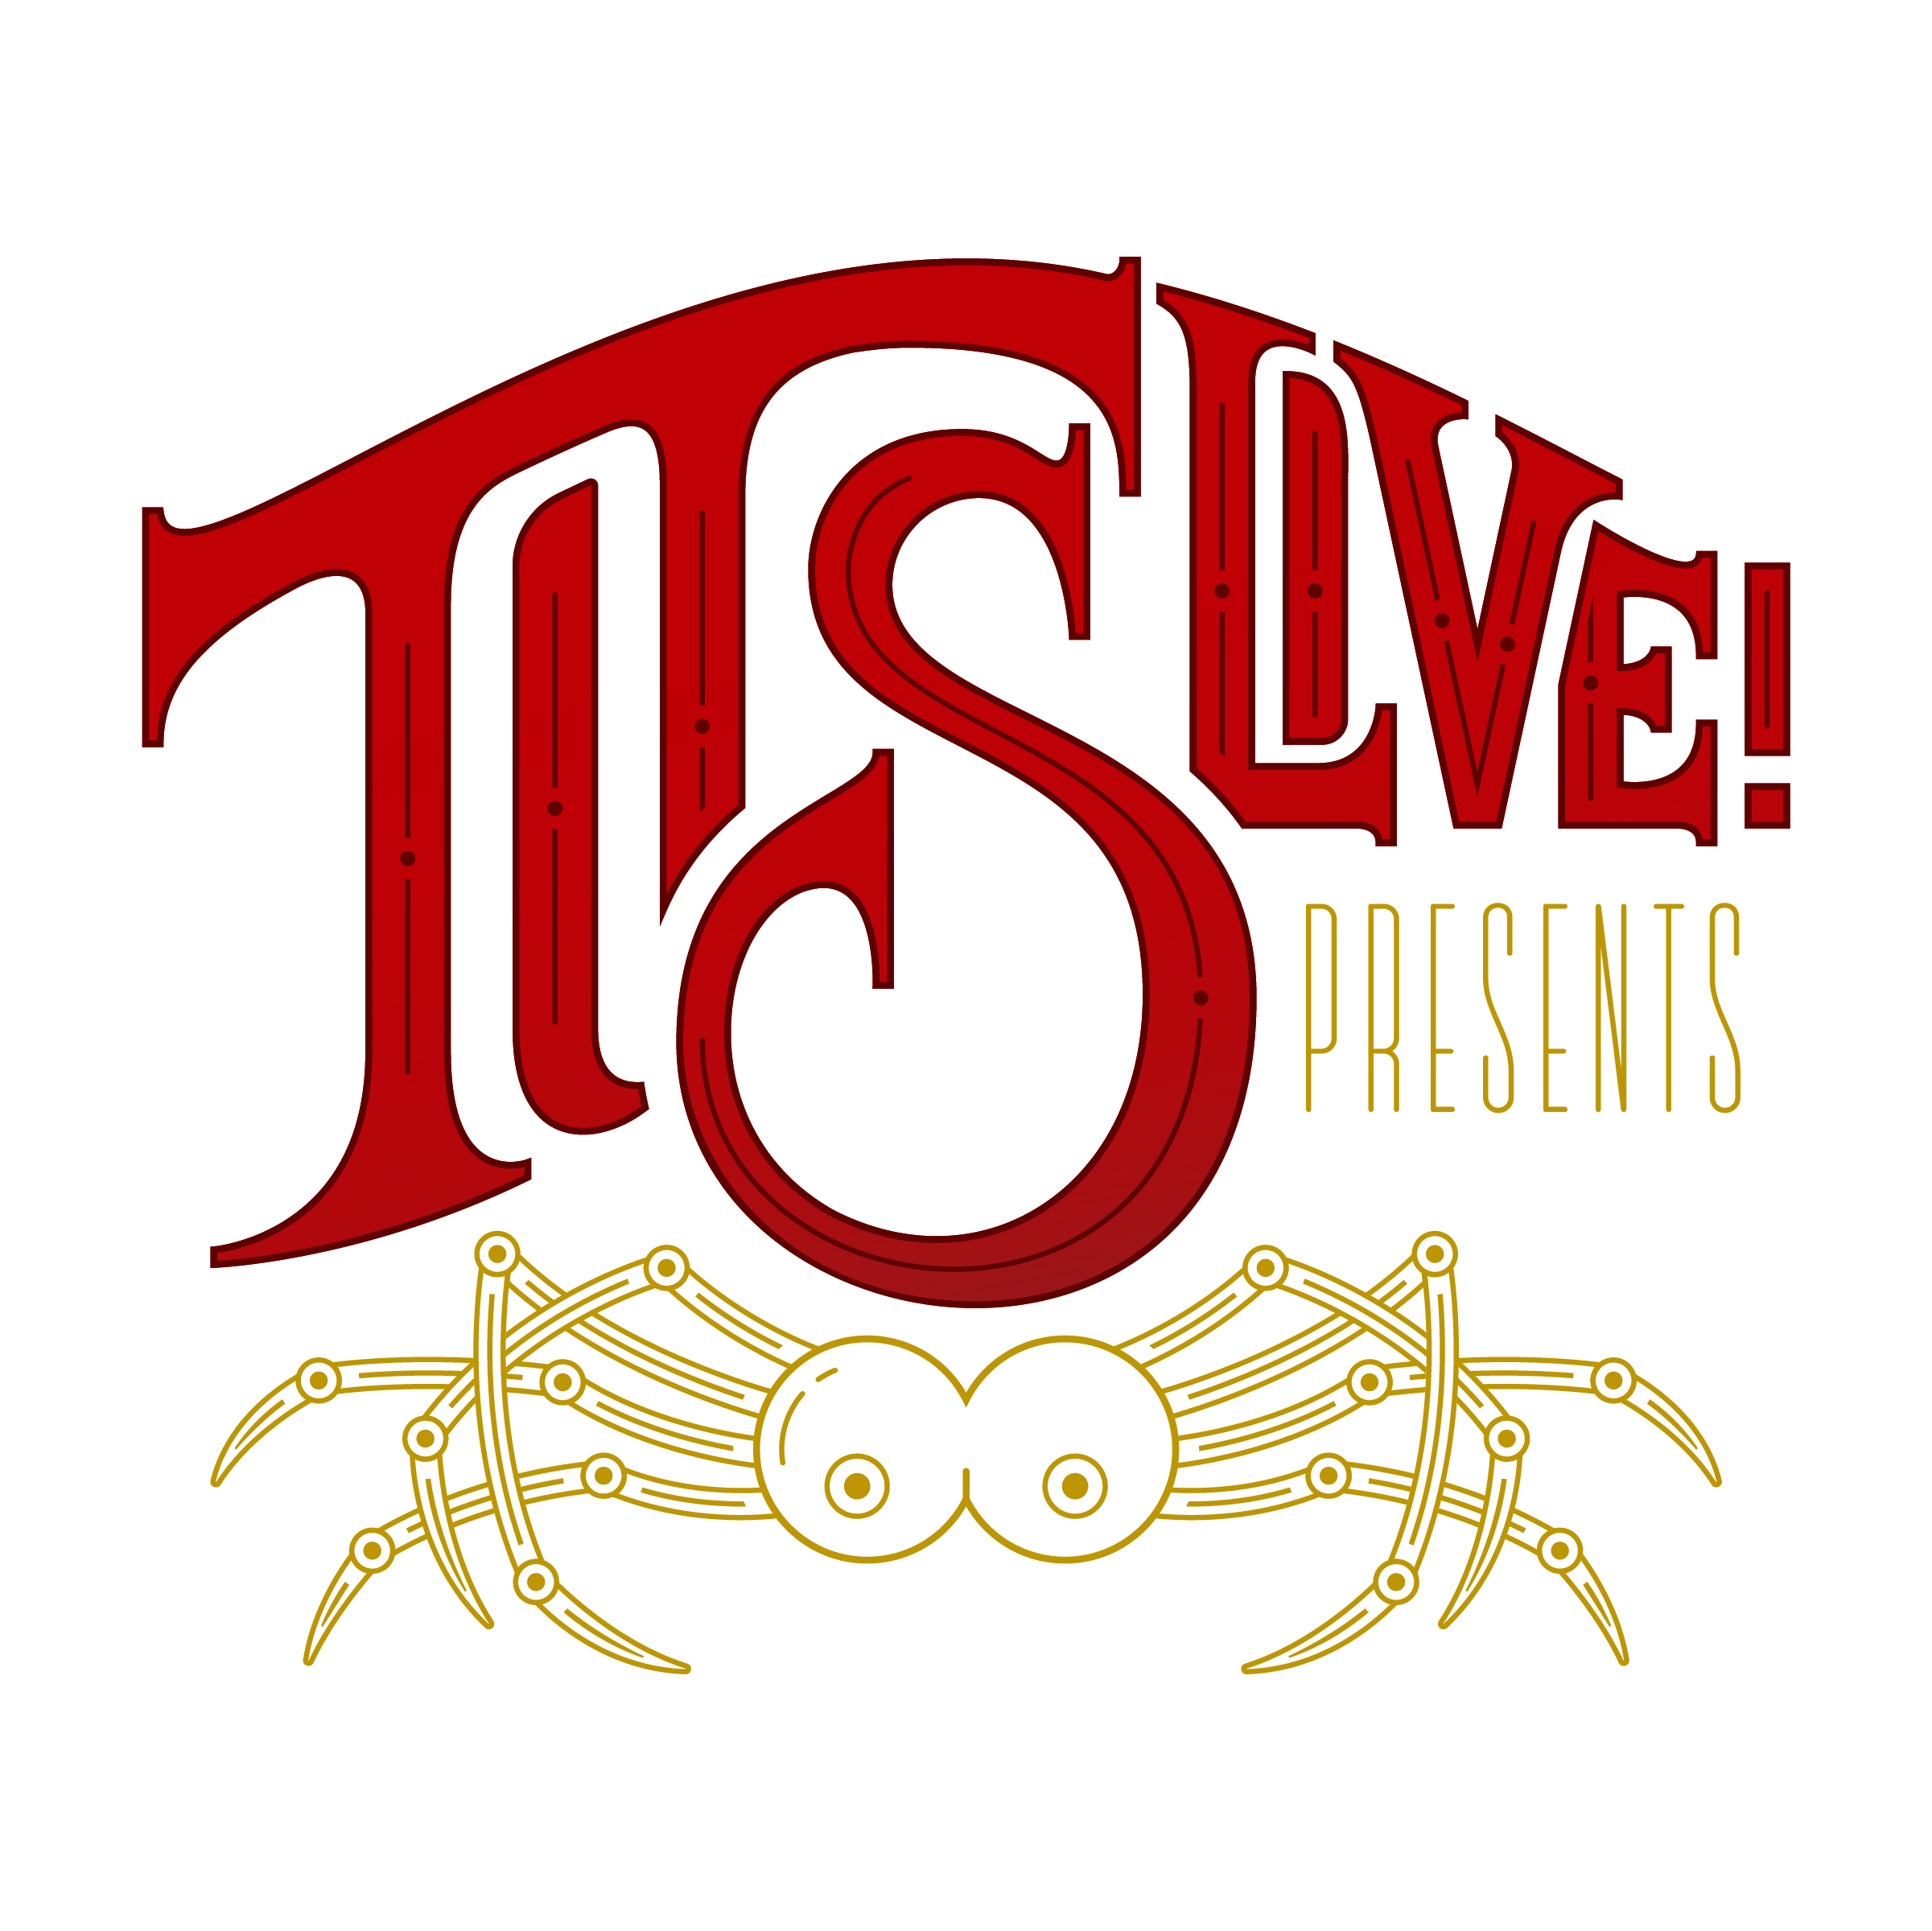 TITS LIVE! PRESENTS - Tits Live! Presents is a burlesque production company. They wanted a logo that represented their culture in the same way as their name: raunchy and a parody of the belief that burlesque is sexual in nature and an entertainment of the flesh.